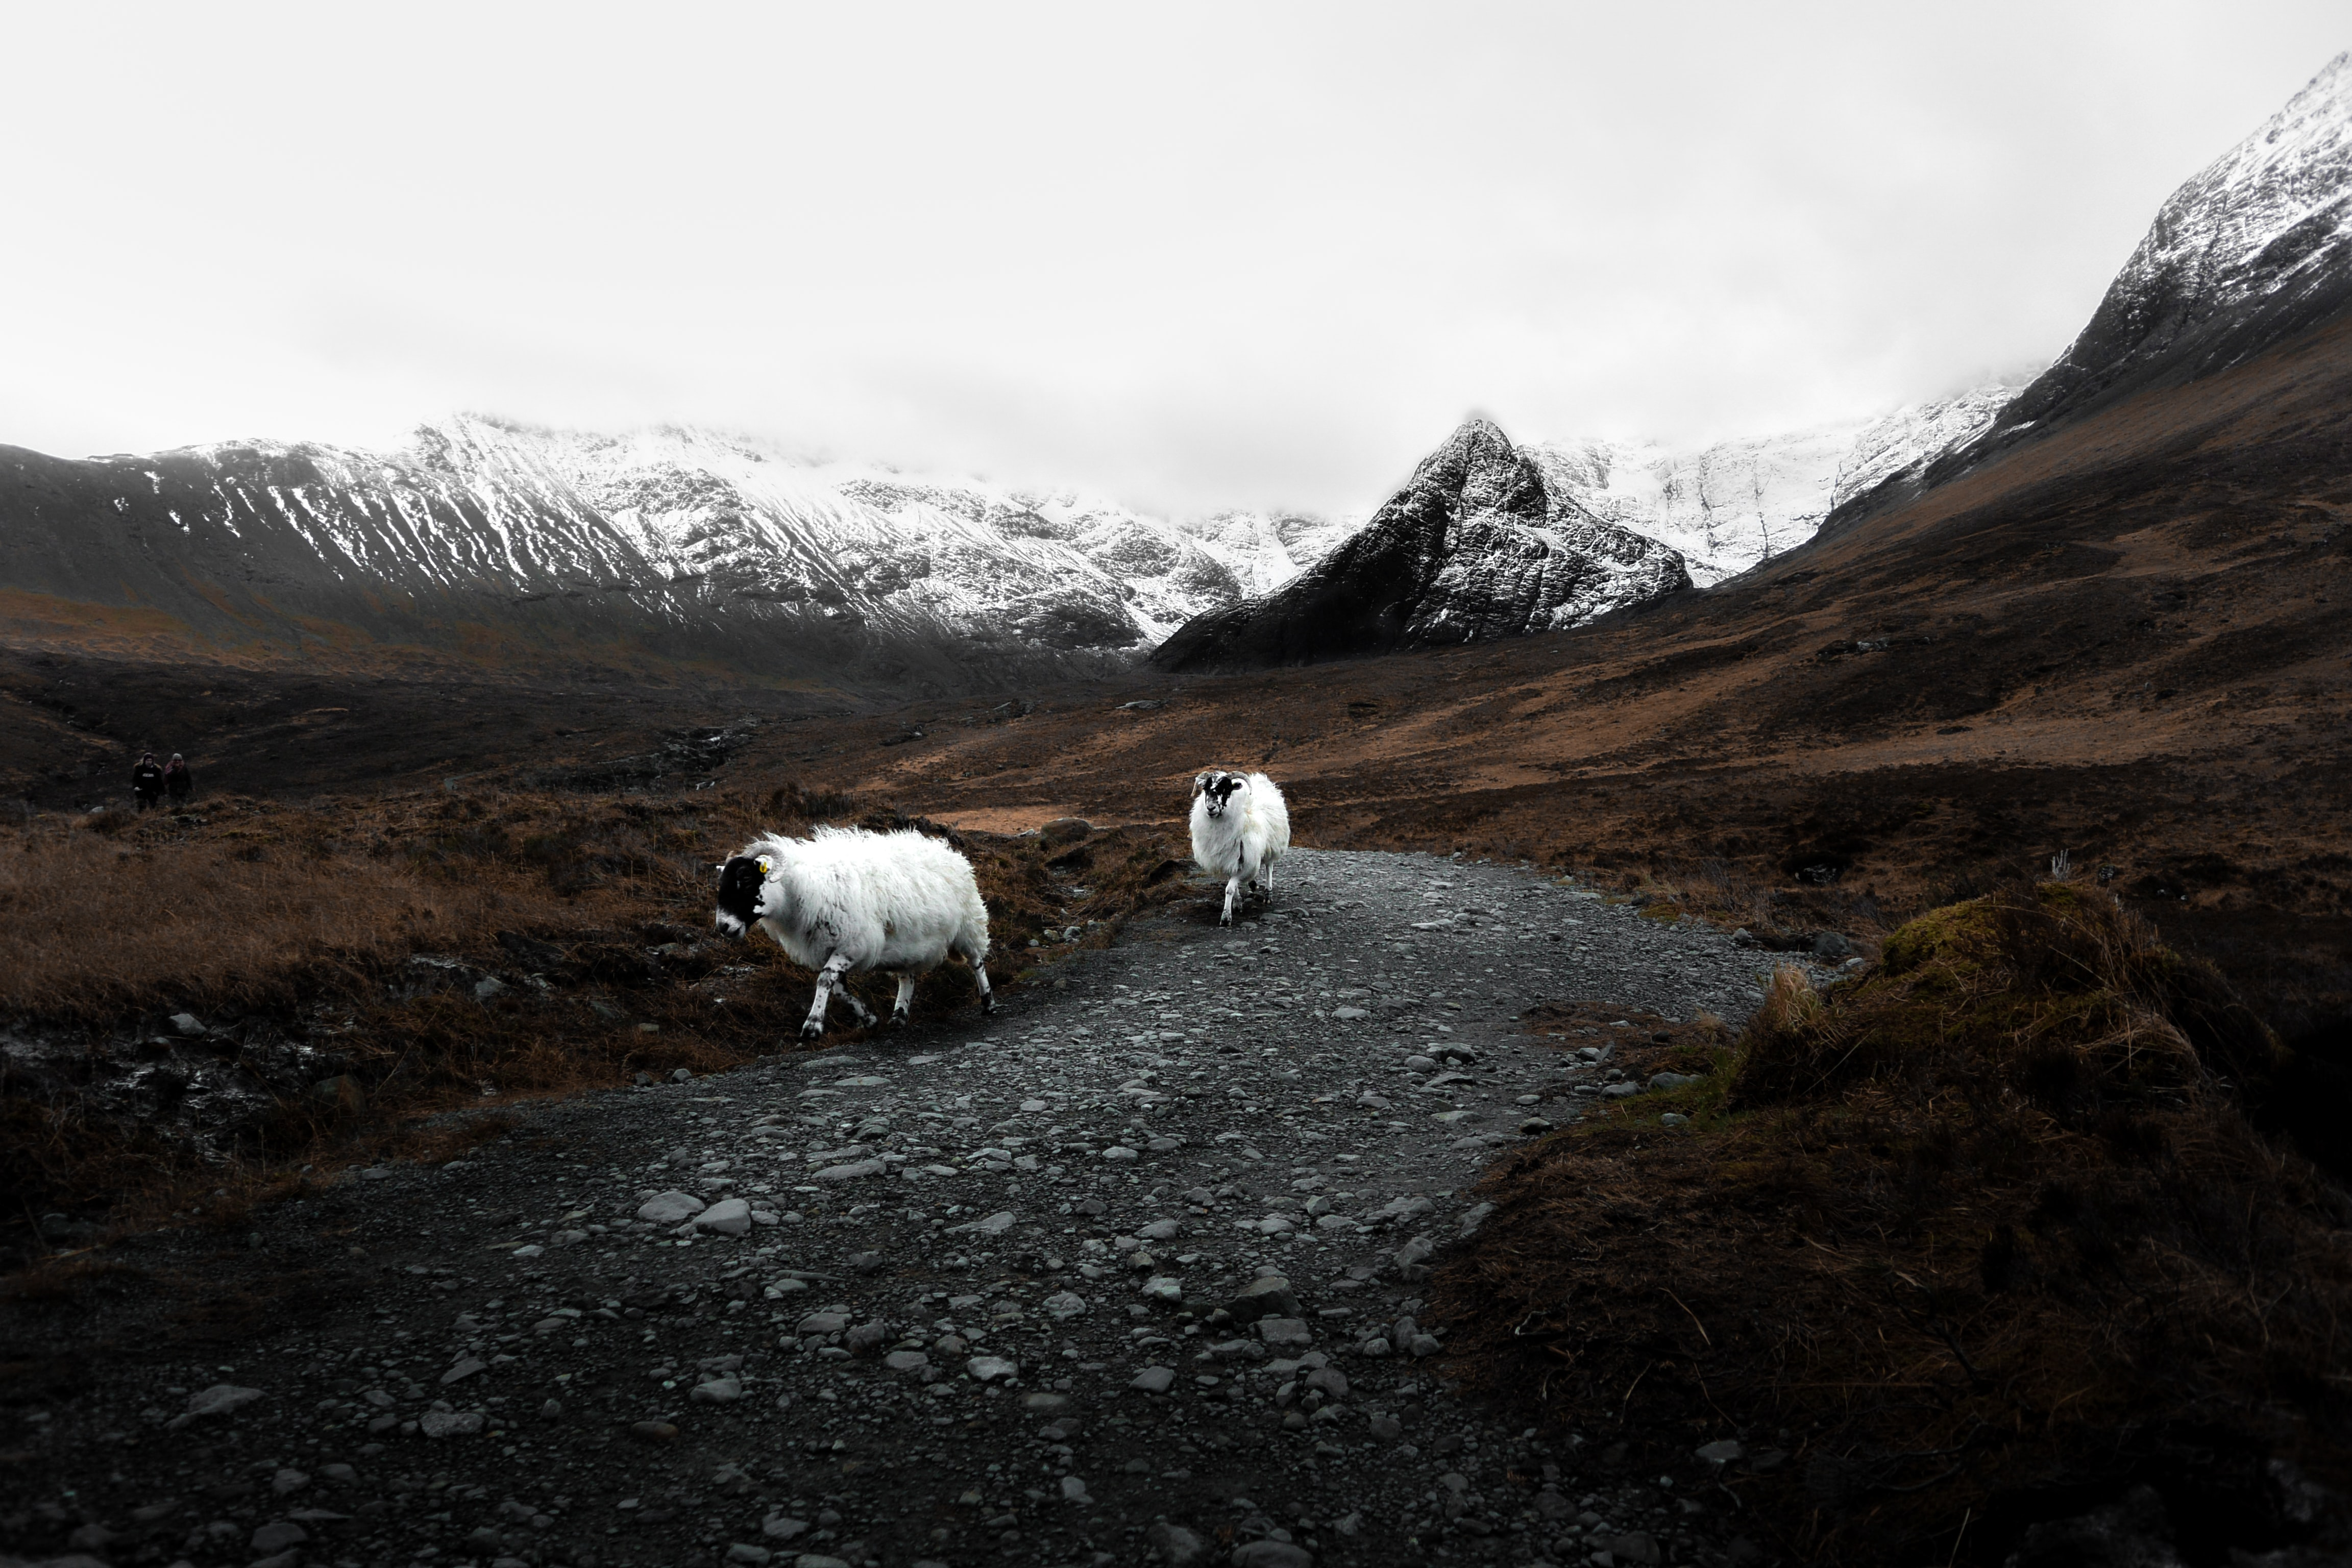 Free Unsplash photo from Jack Cairney